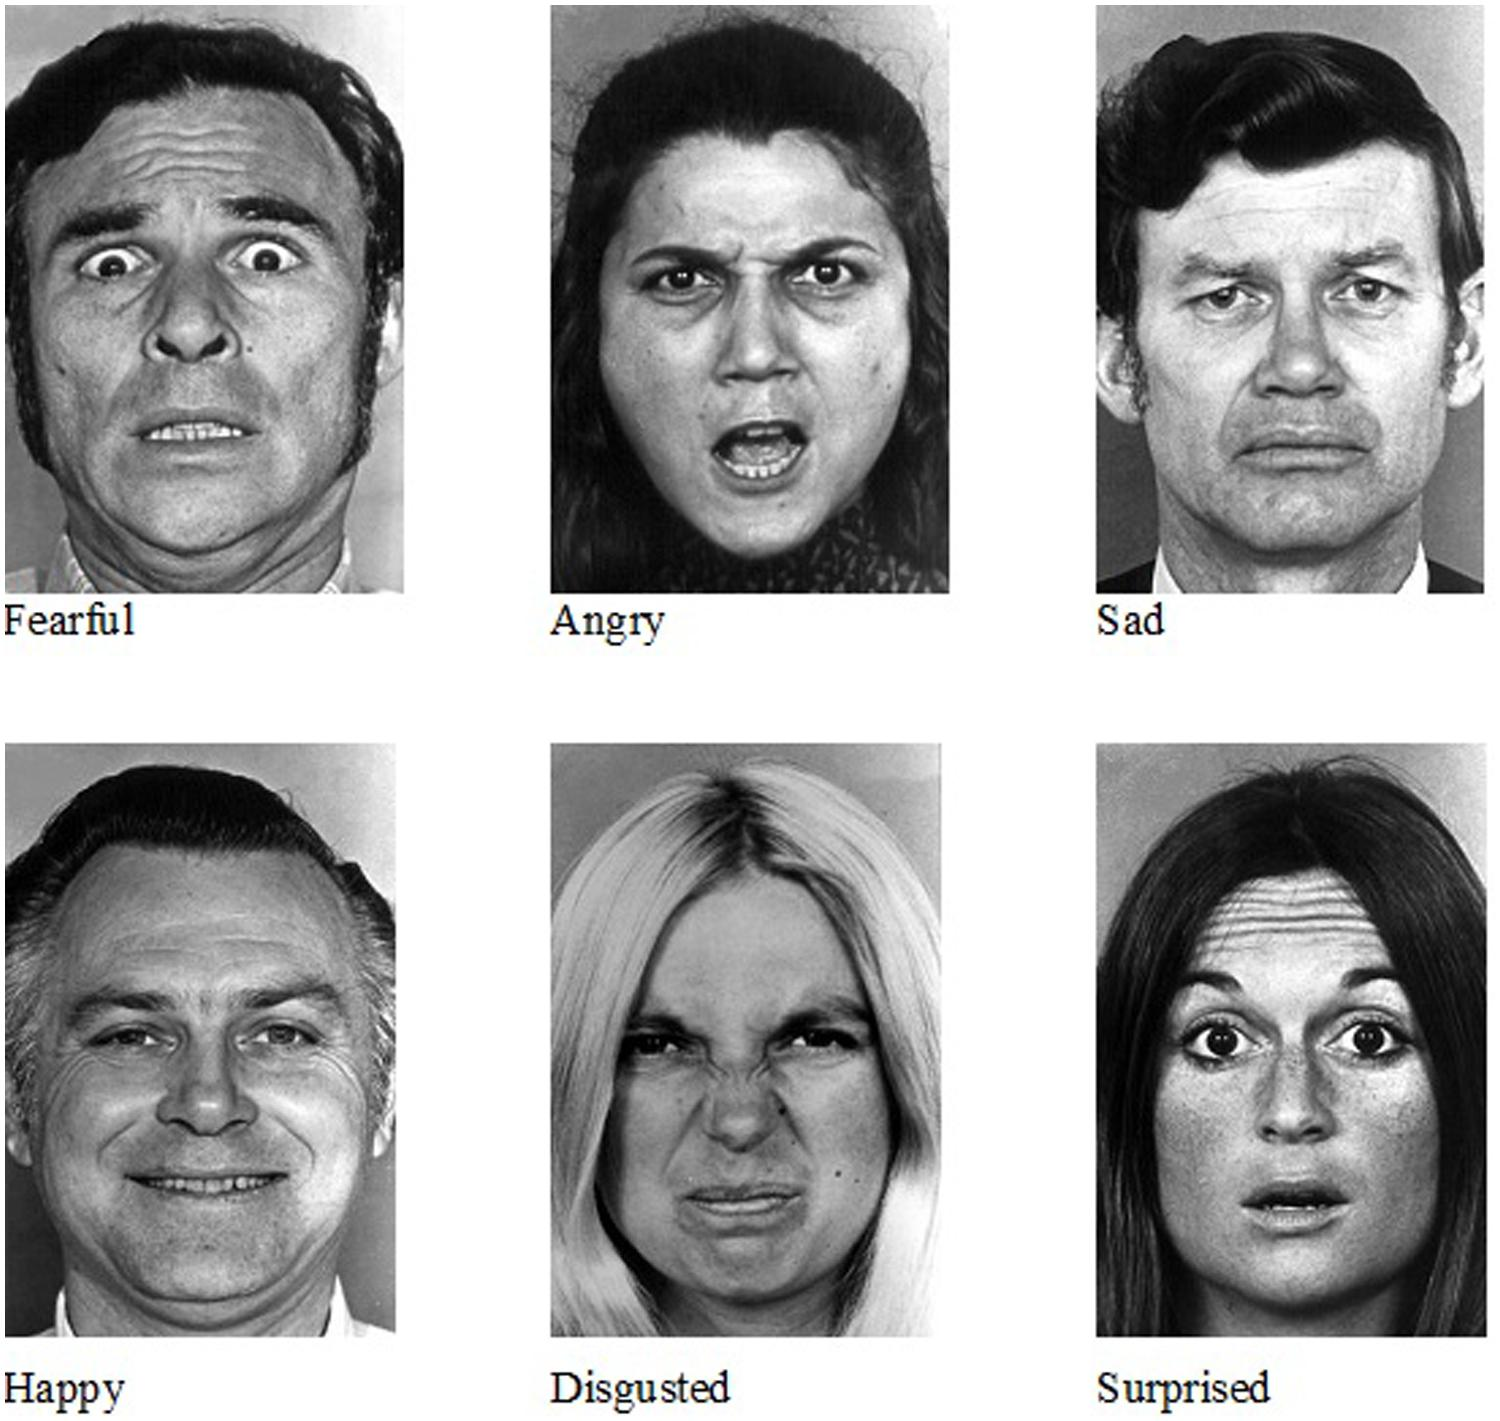 Introduction To Facial Emotion Recognition